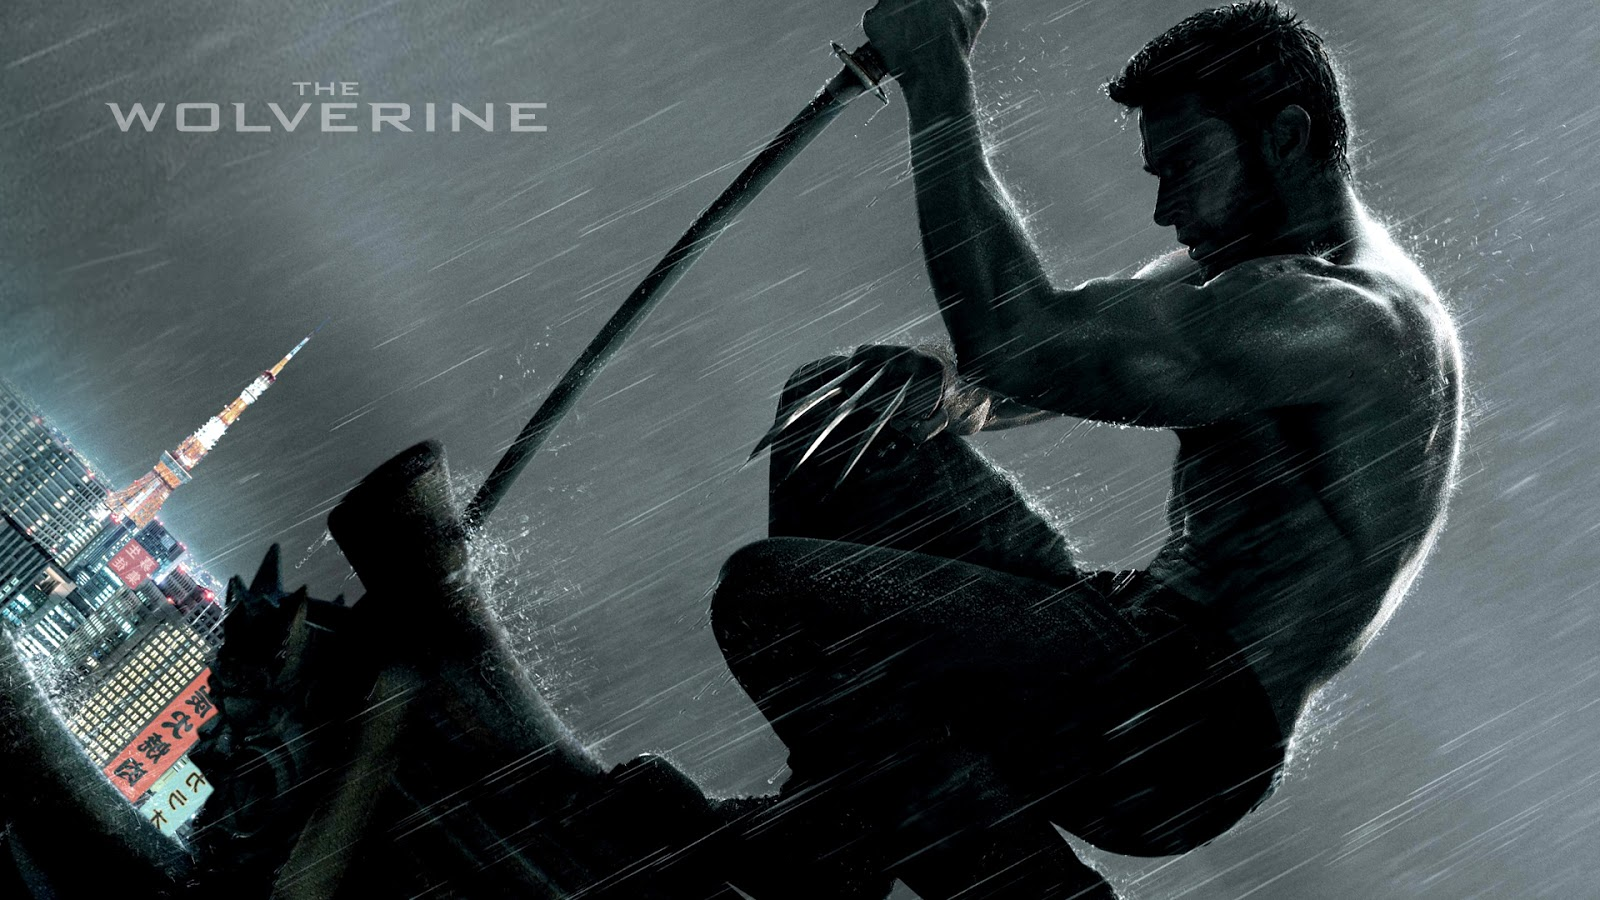 The Wolverine Hd Wallpapers Wallpaper202